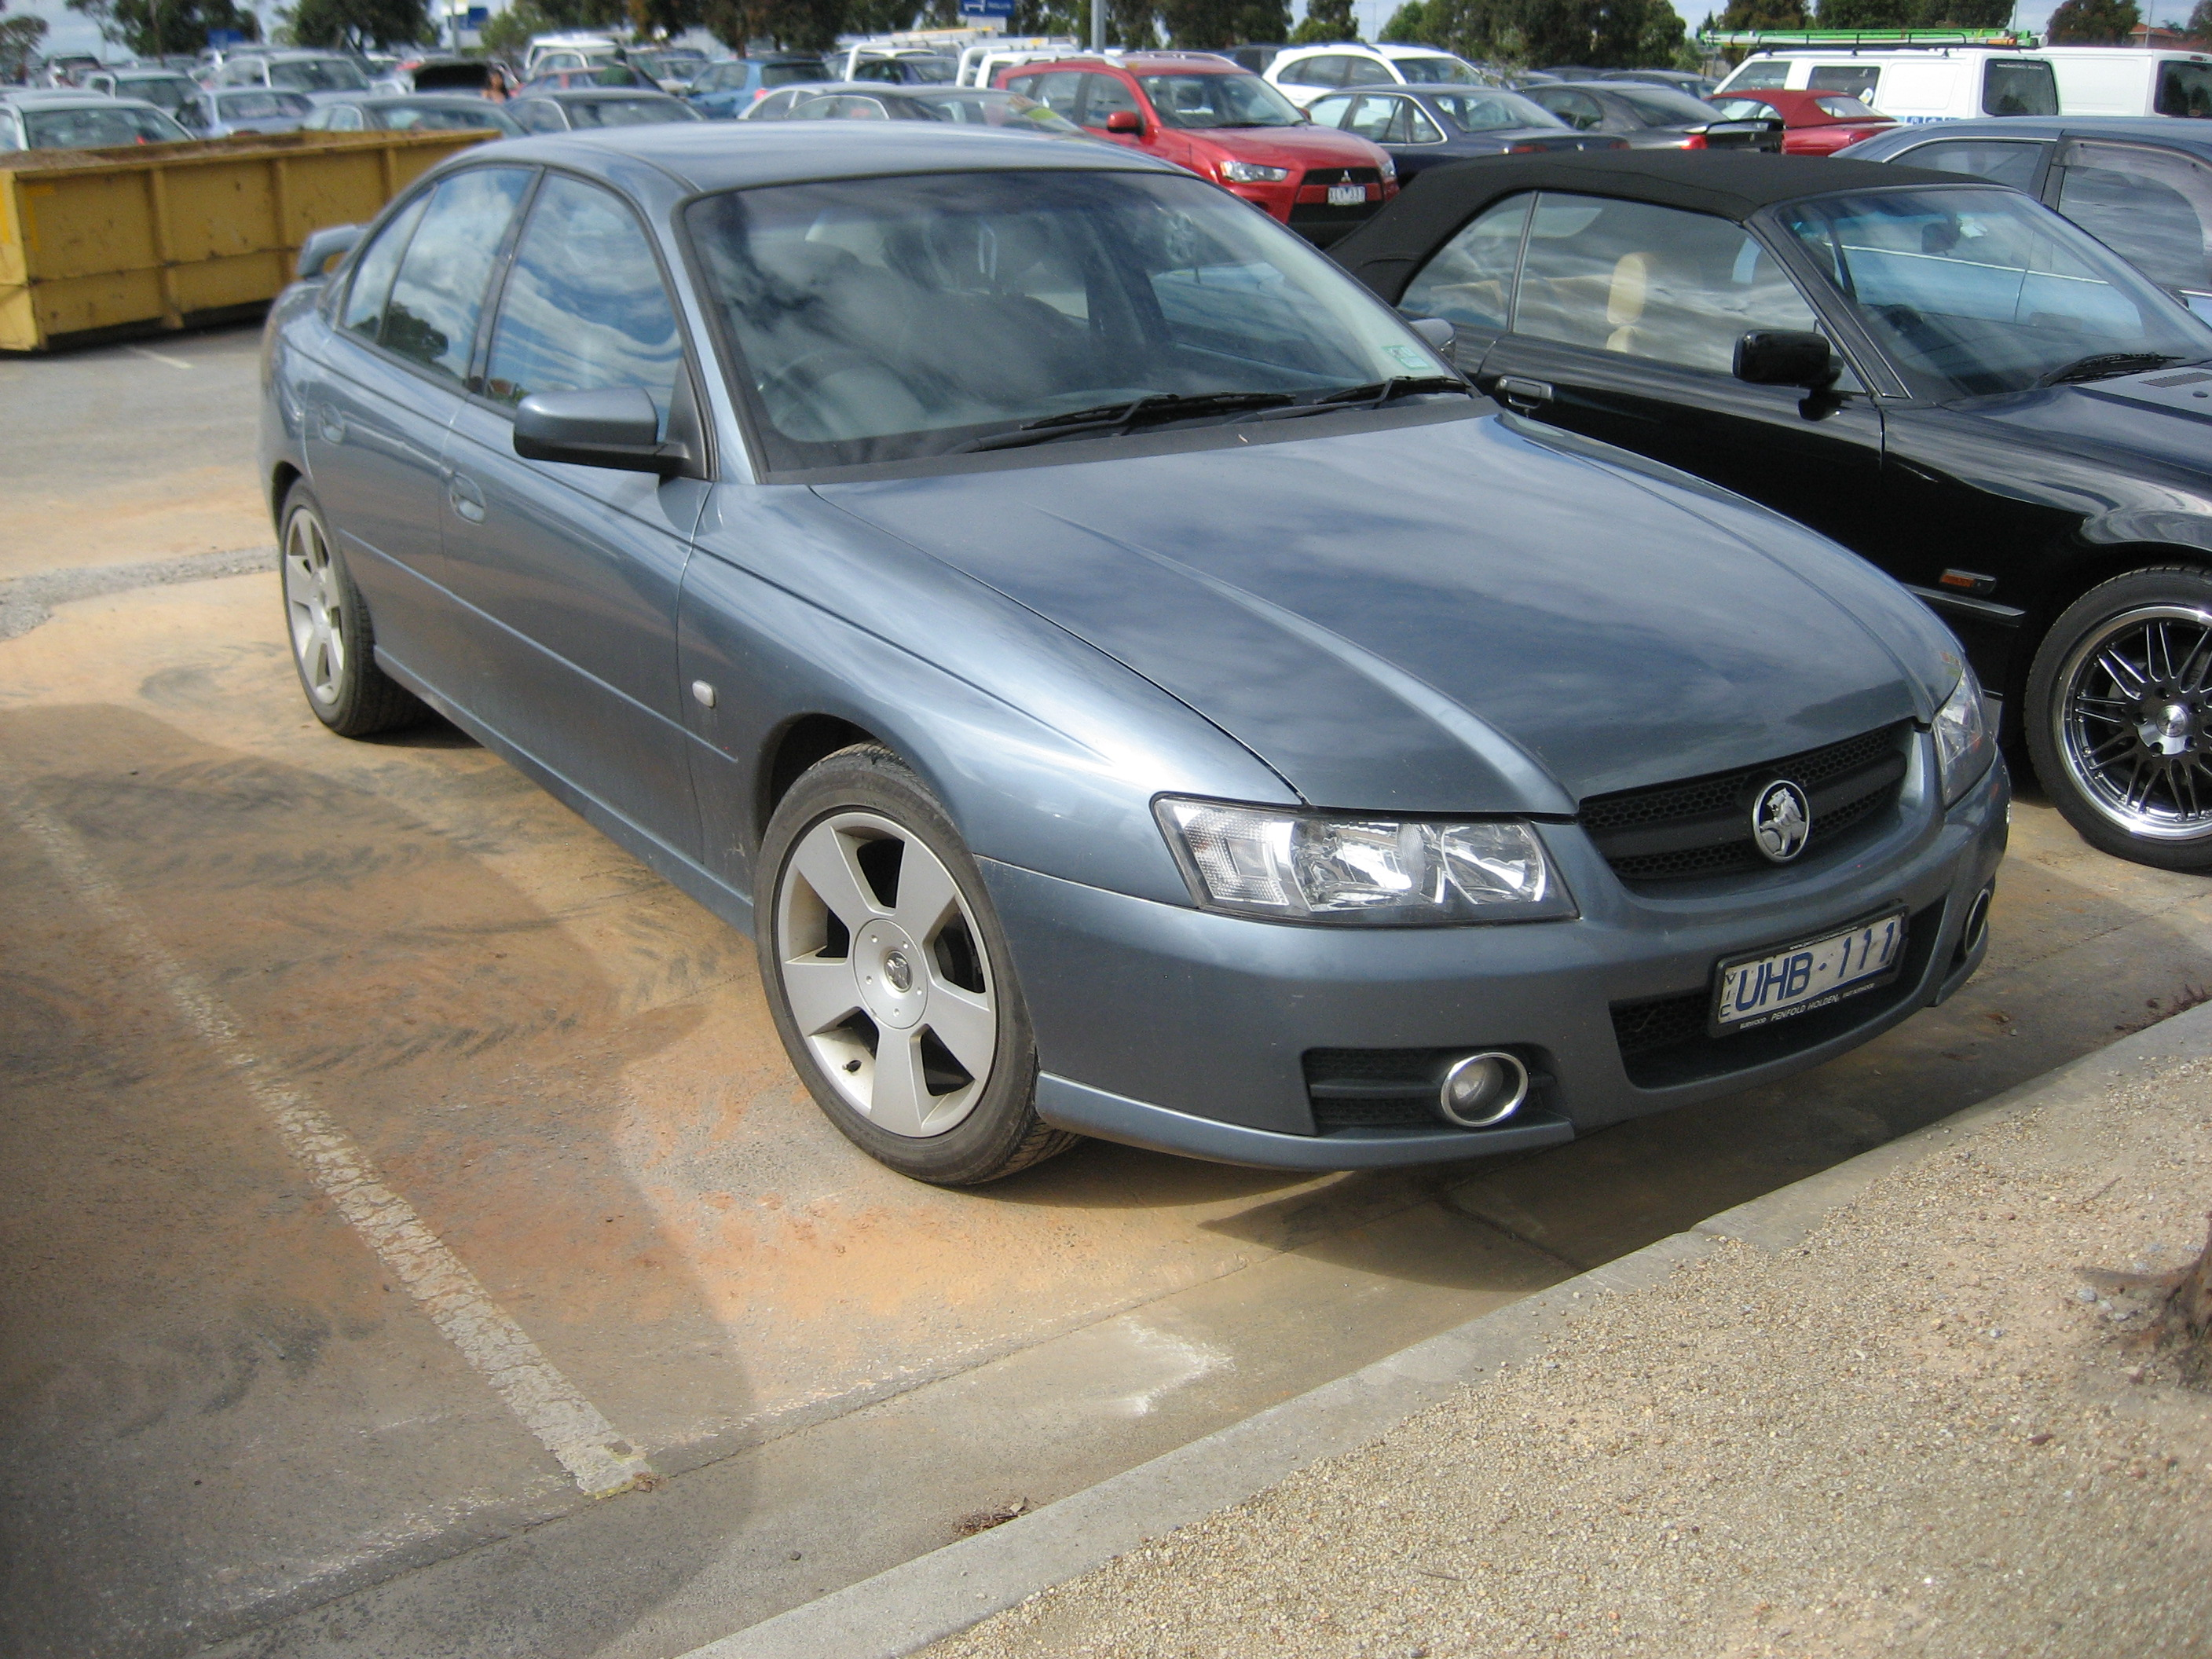 2005 Holden Commodore wagon (vt) – pictures, information and specs